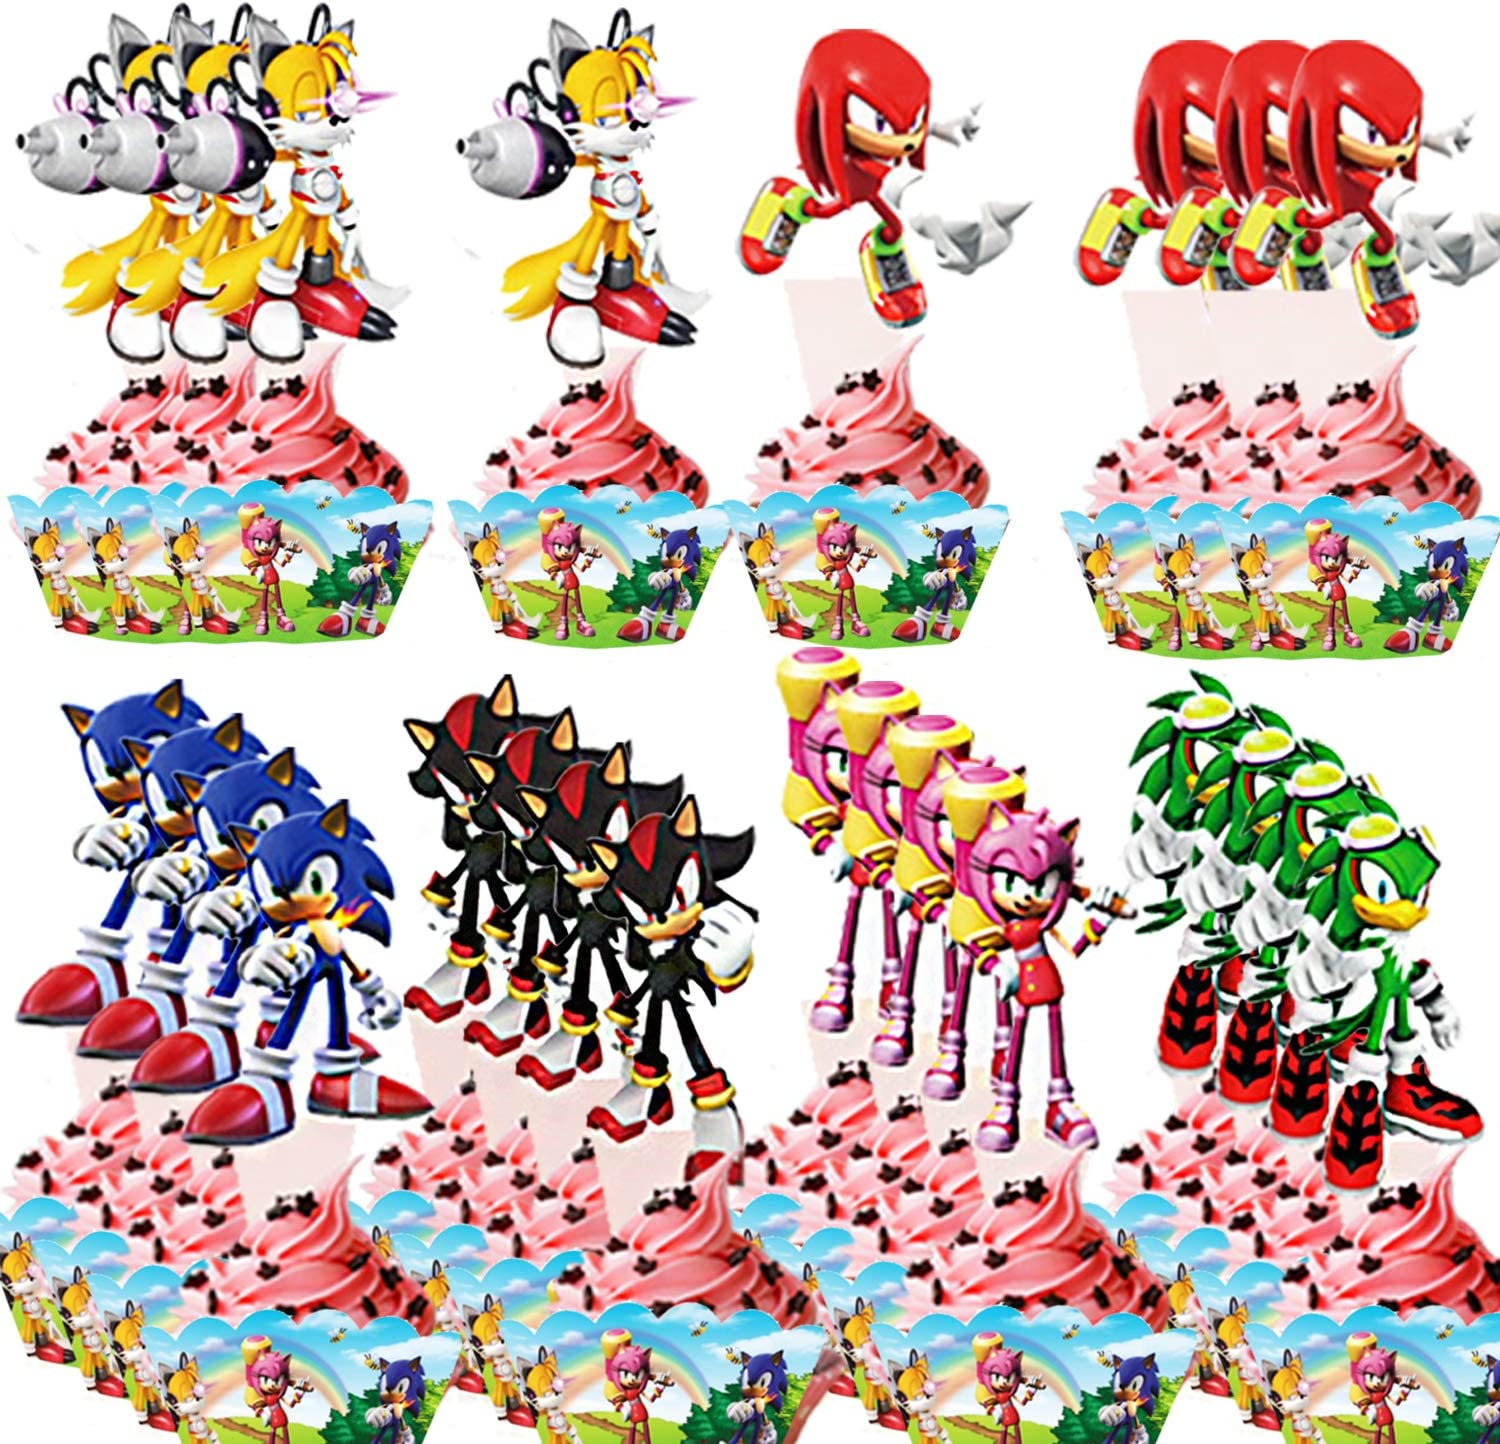 48 Pcs Sonic the Hedgehog Cupcake Decorations - 24 pcs Sonic the Hedgehog Cupcake Toppers and 24 pcs Cupcake Wrappers Sonic the Hedgehog Themed Cake Party Decoration for Kids Birthday Party Supplies Cake Decorations